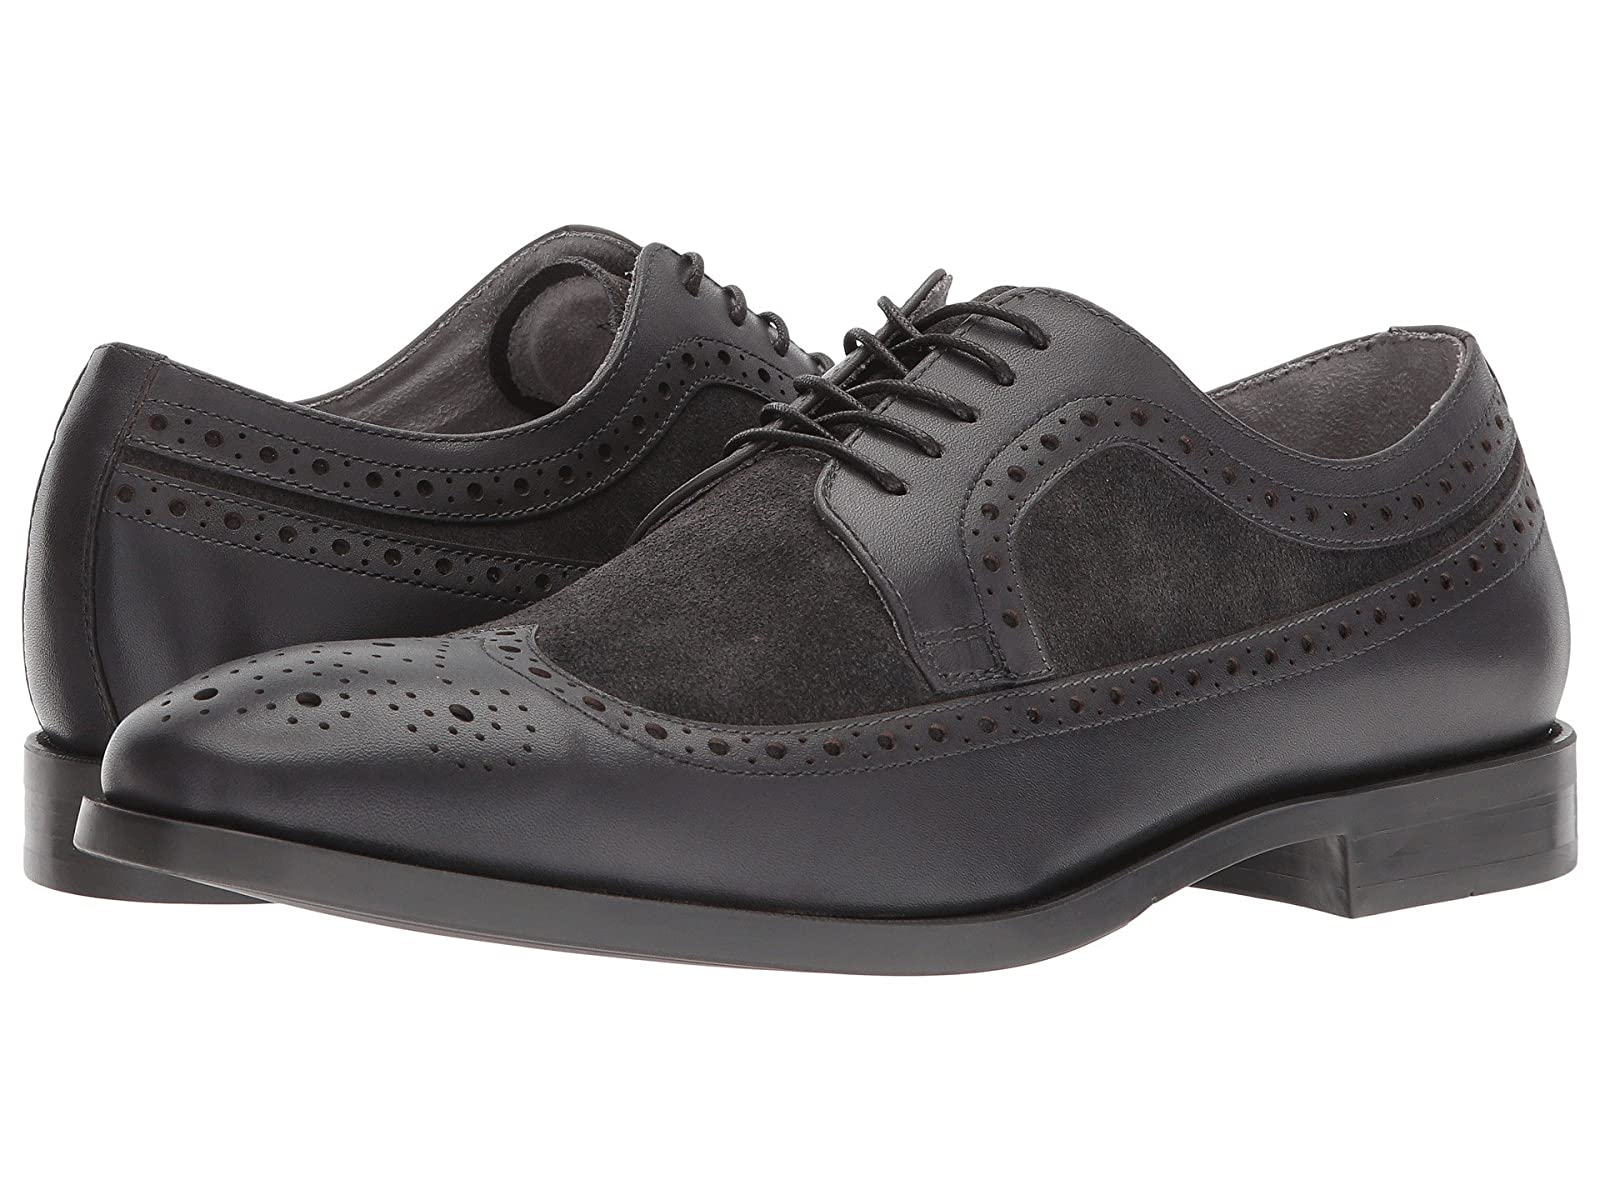 Kenneth Cole New York Ticket OxfordAtmospheric grades have affordable shoes